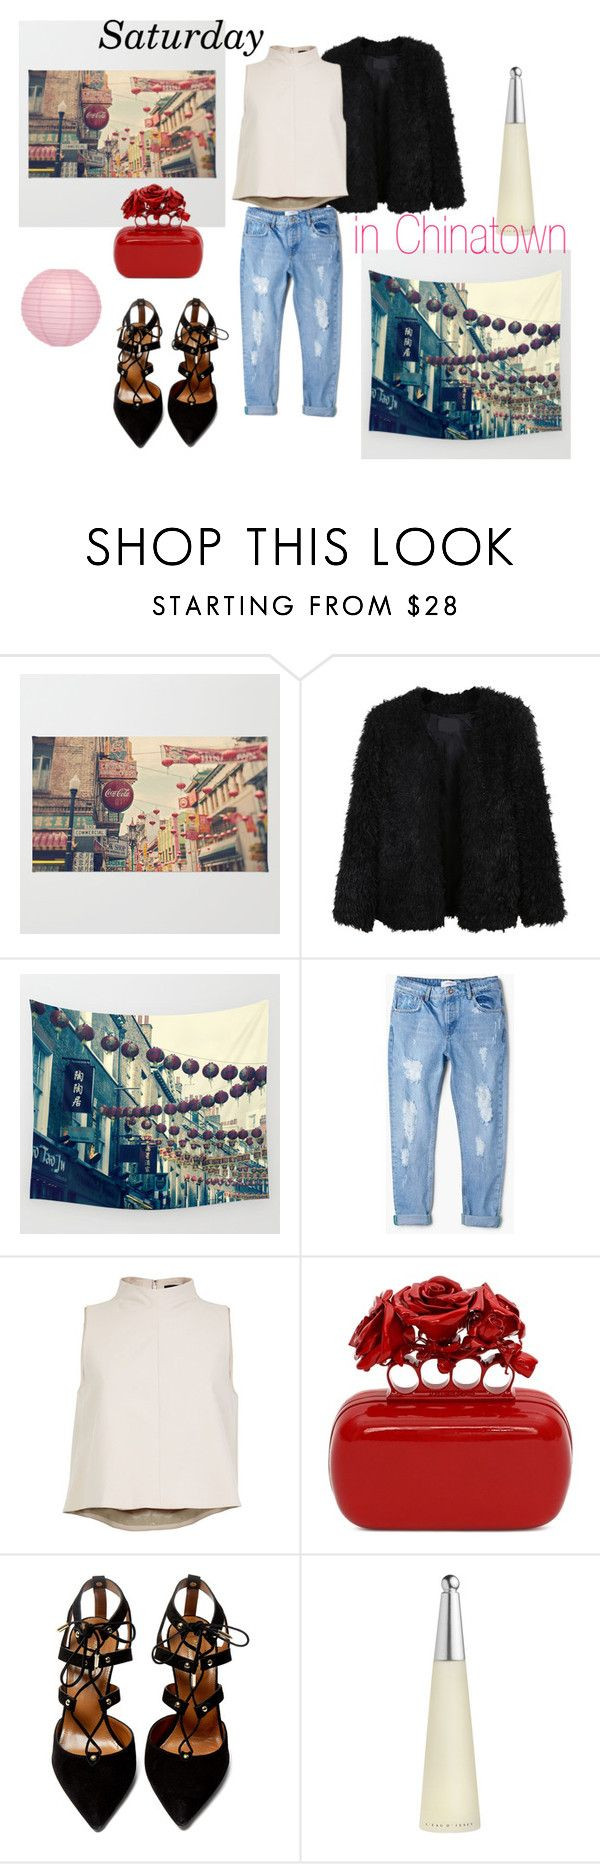 #chinatown by slounis on Polyvore featuring moda, TIBI, LE3NO, MANGO, Aquazzura, Alexander McQueen, Issey Miyake and Cultural Intrigue